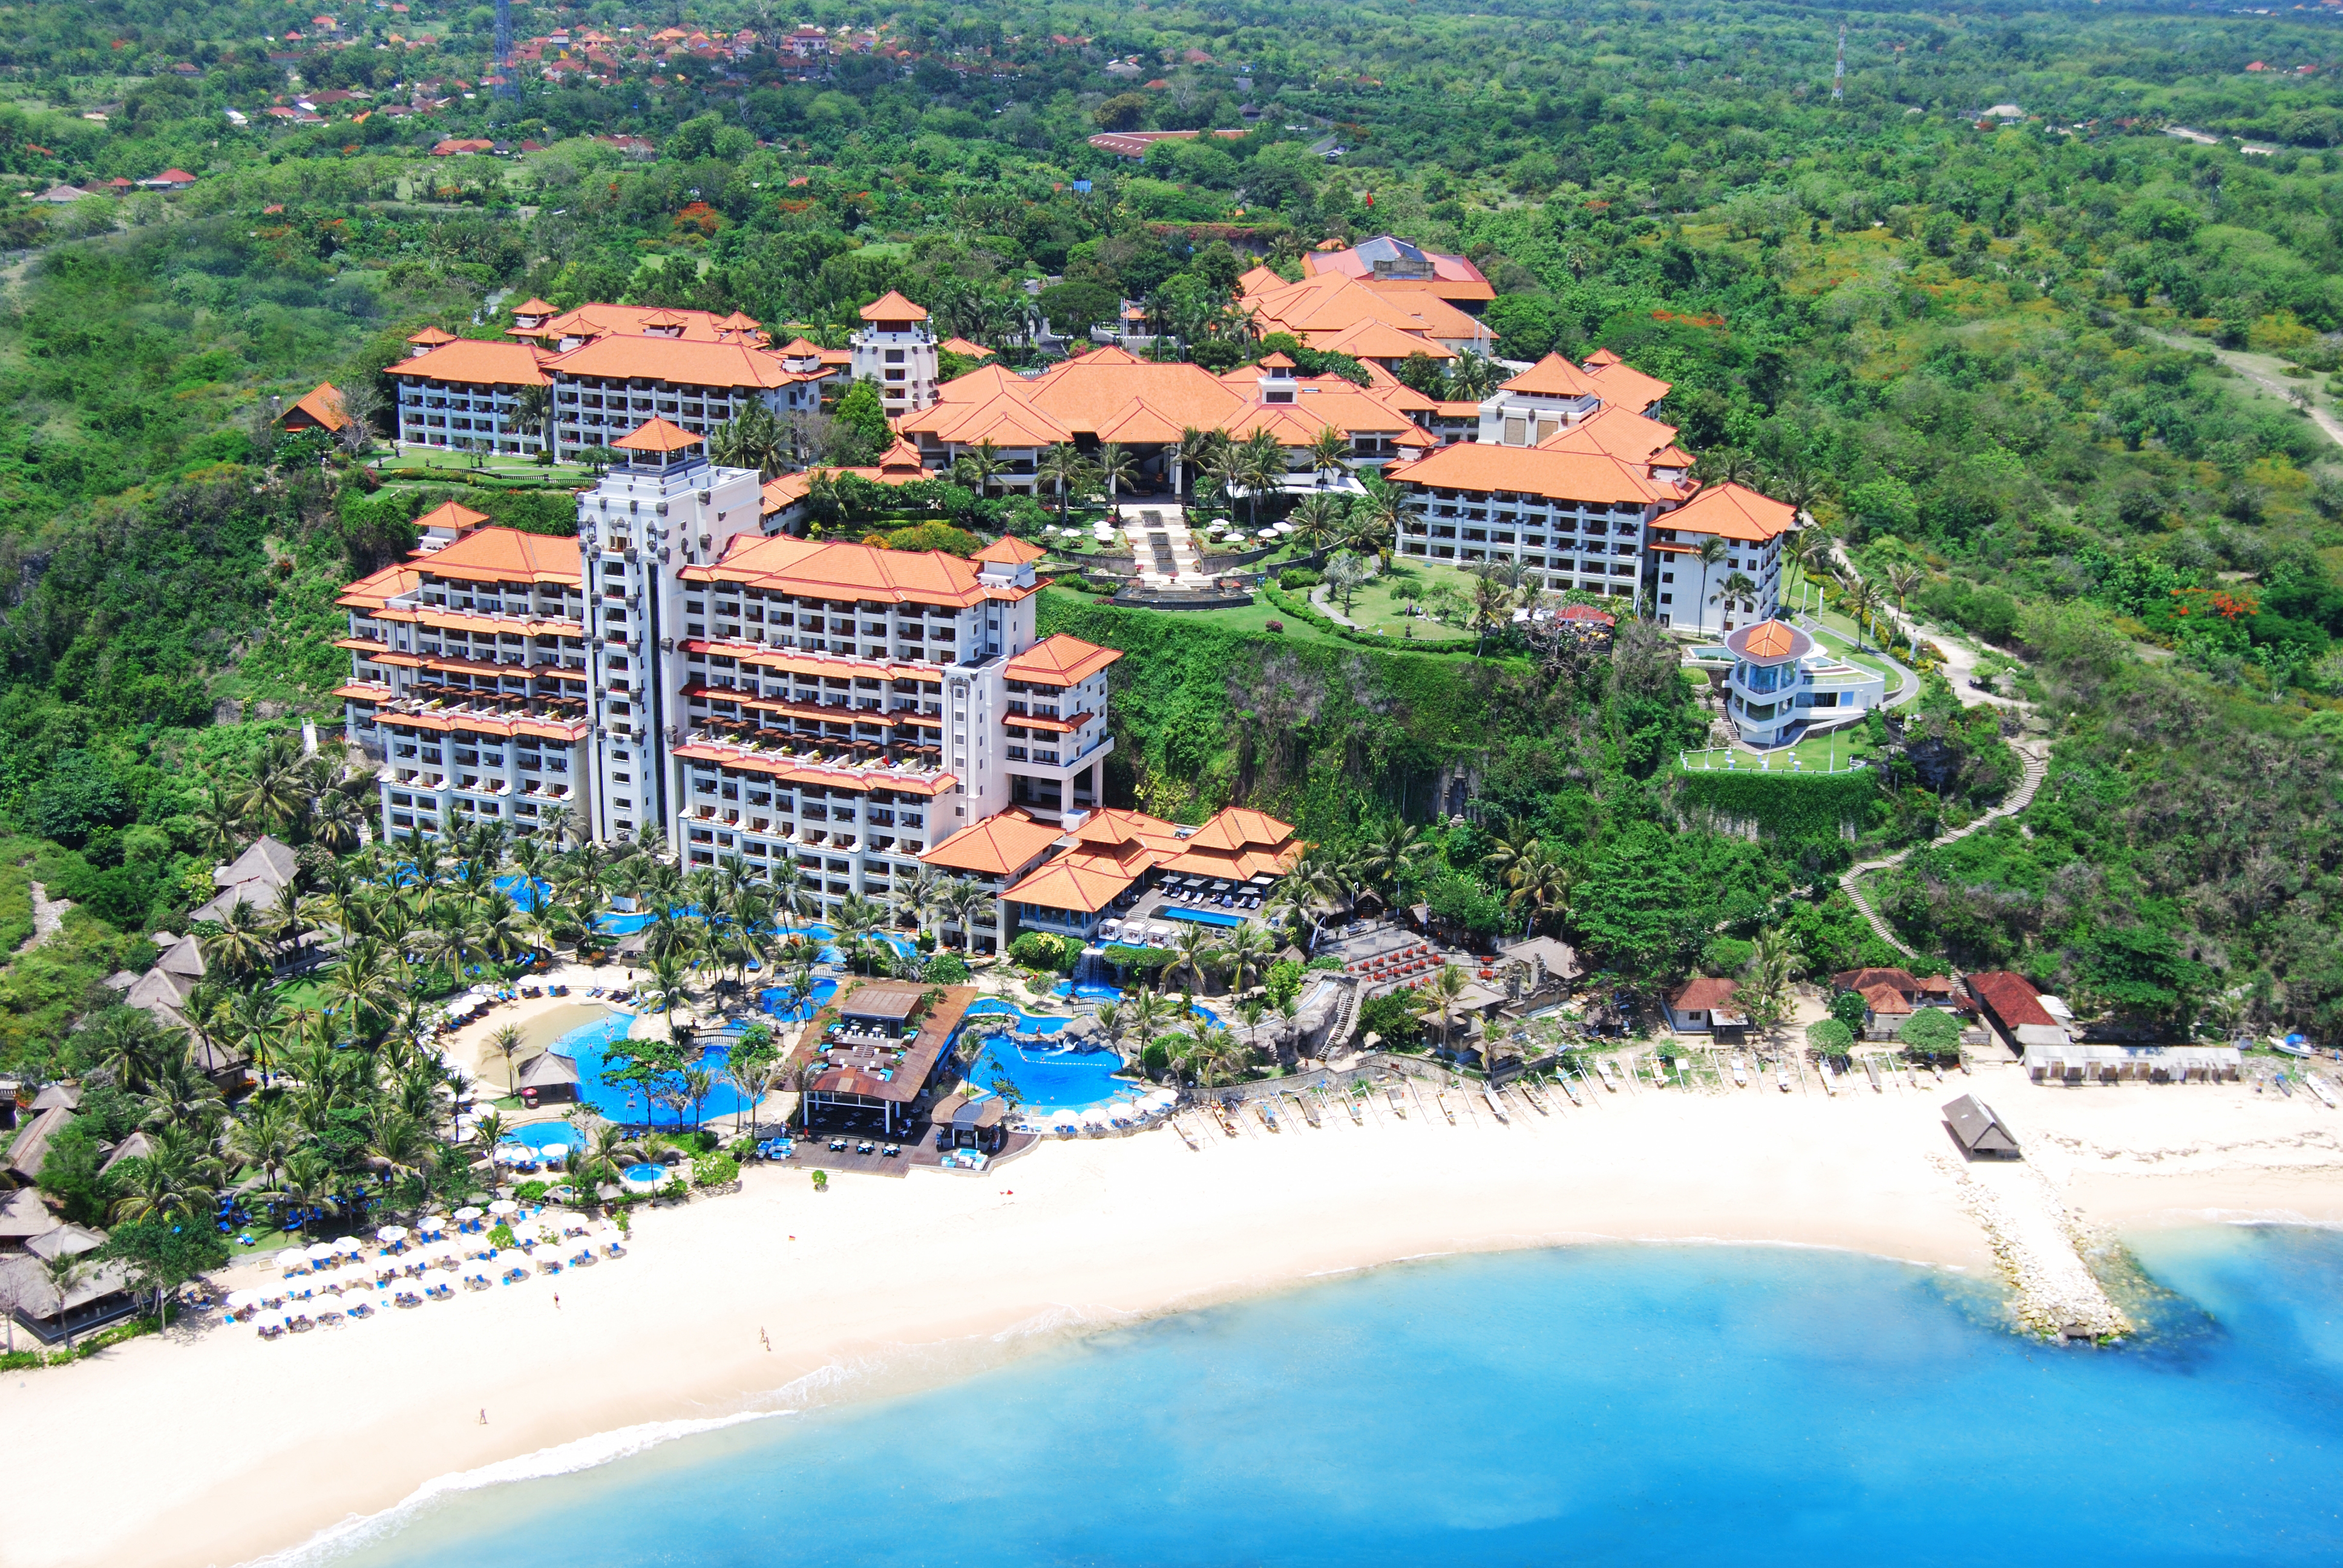 Hilton Hotels Resorts Debuts In Bali With Stunning Cliff Top Getaway Business Wire